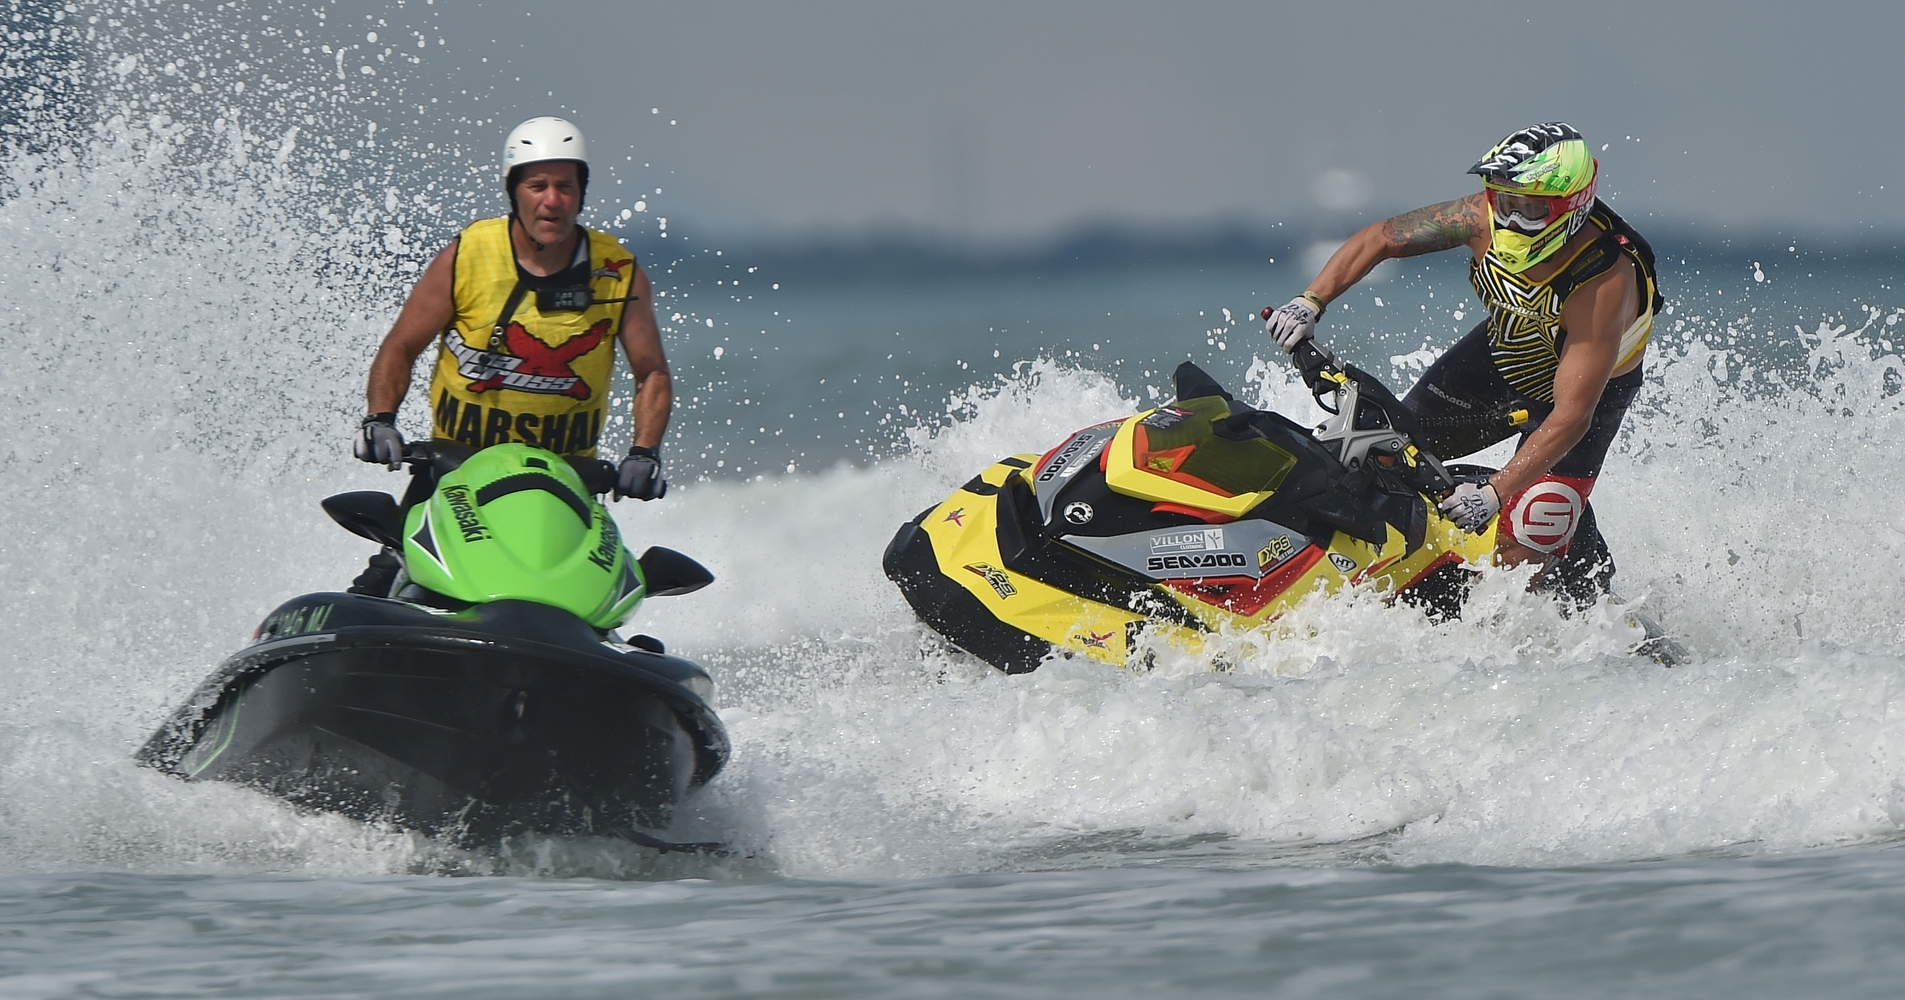 ECS will be working closely with the P1 AquaX Marshal team